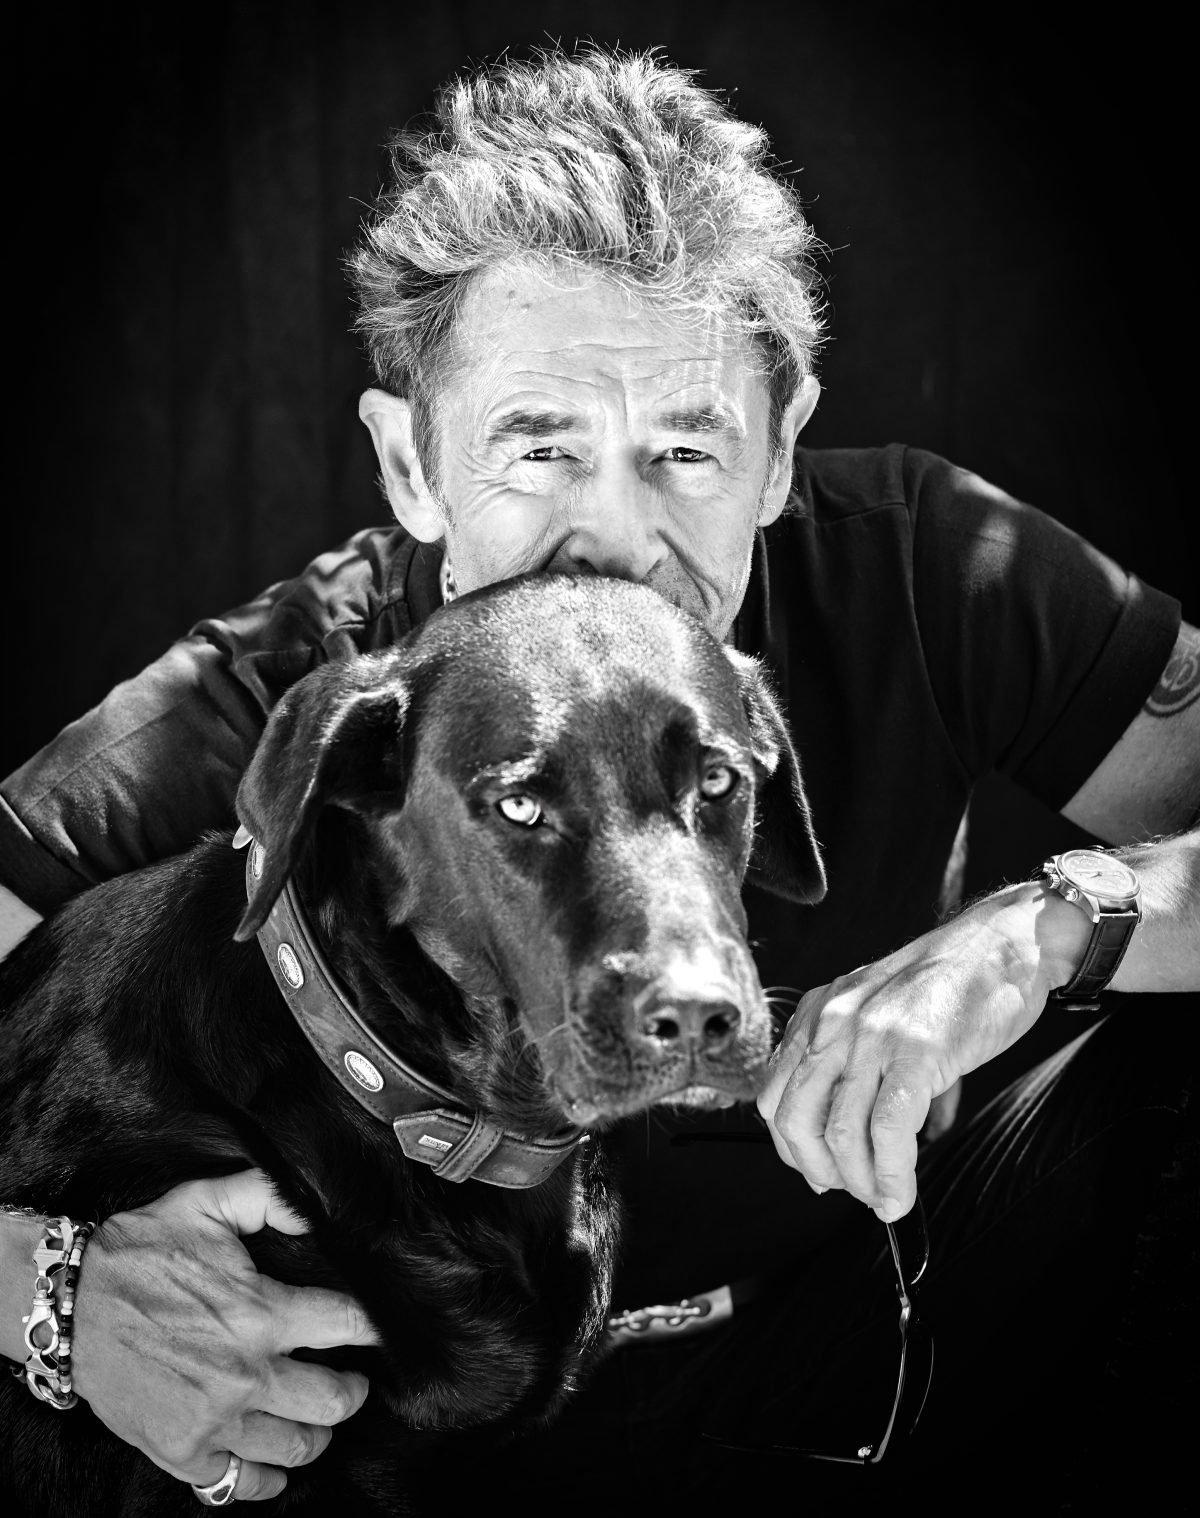 peter-maffay-fuer-mein-charity-buch-prominent-mit-hund-www.misterspencer.de